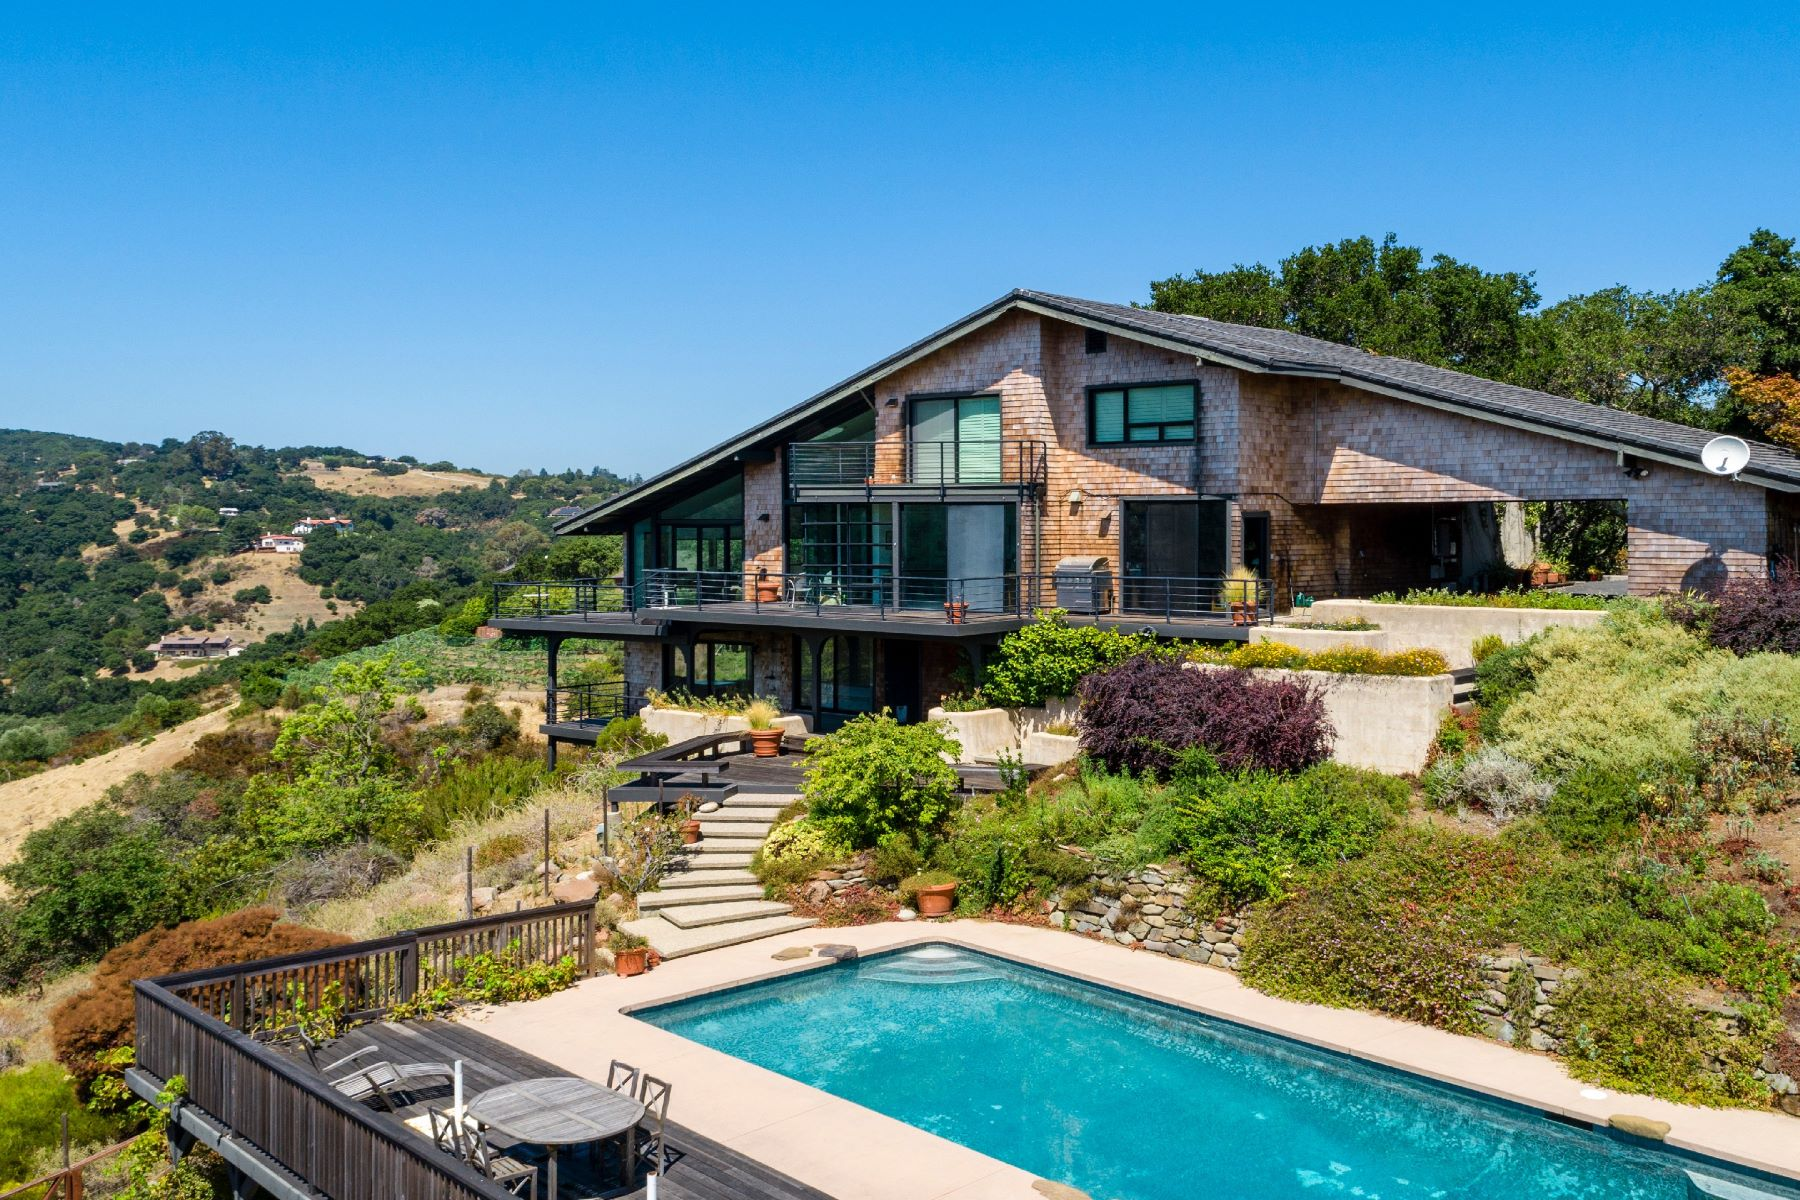 Single Family Homes for Sale at Sophisticated Contemporary Home with Panoramic Canyon Views 27431 Deer Springs Way Los Altos Hills, California 94022 United States